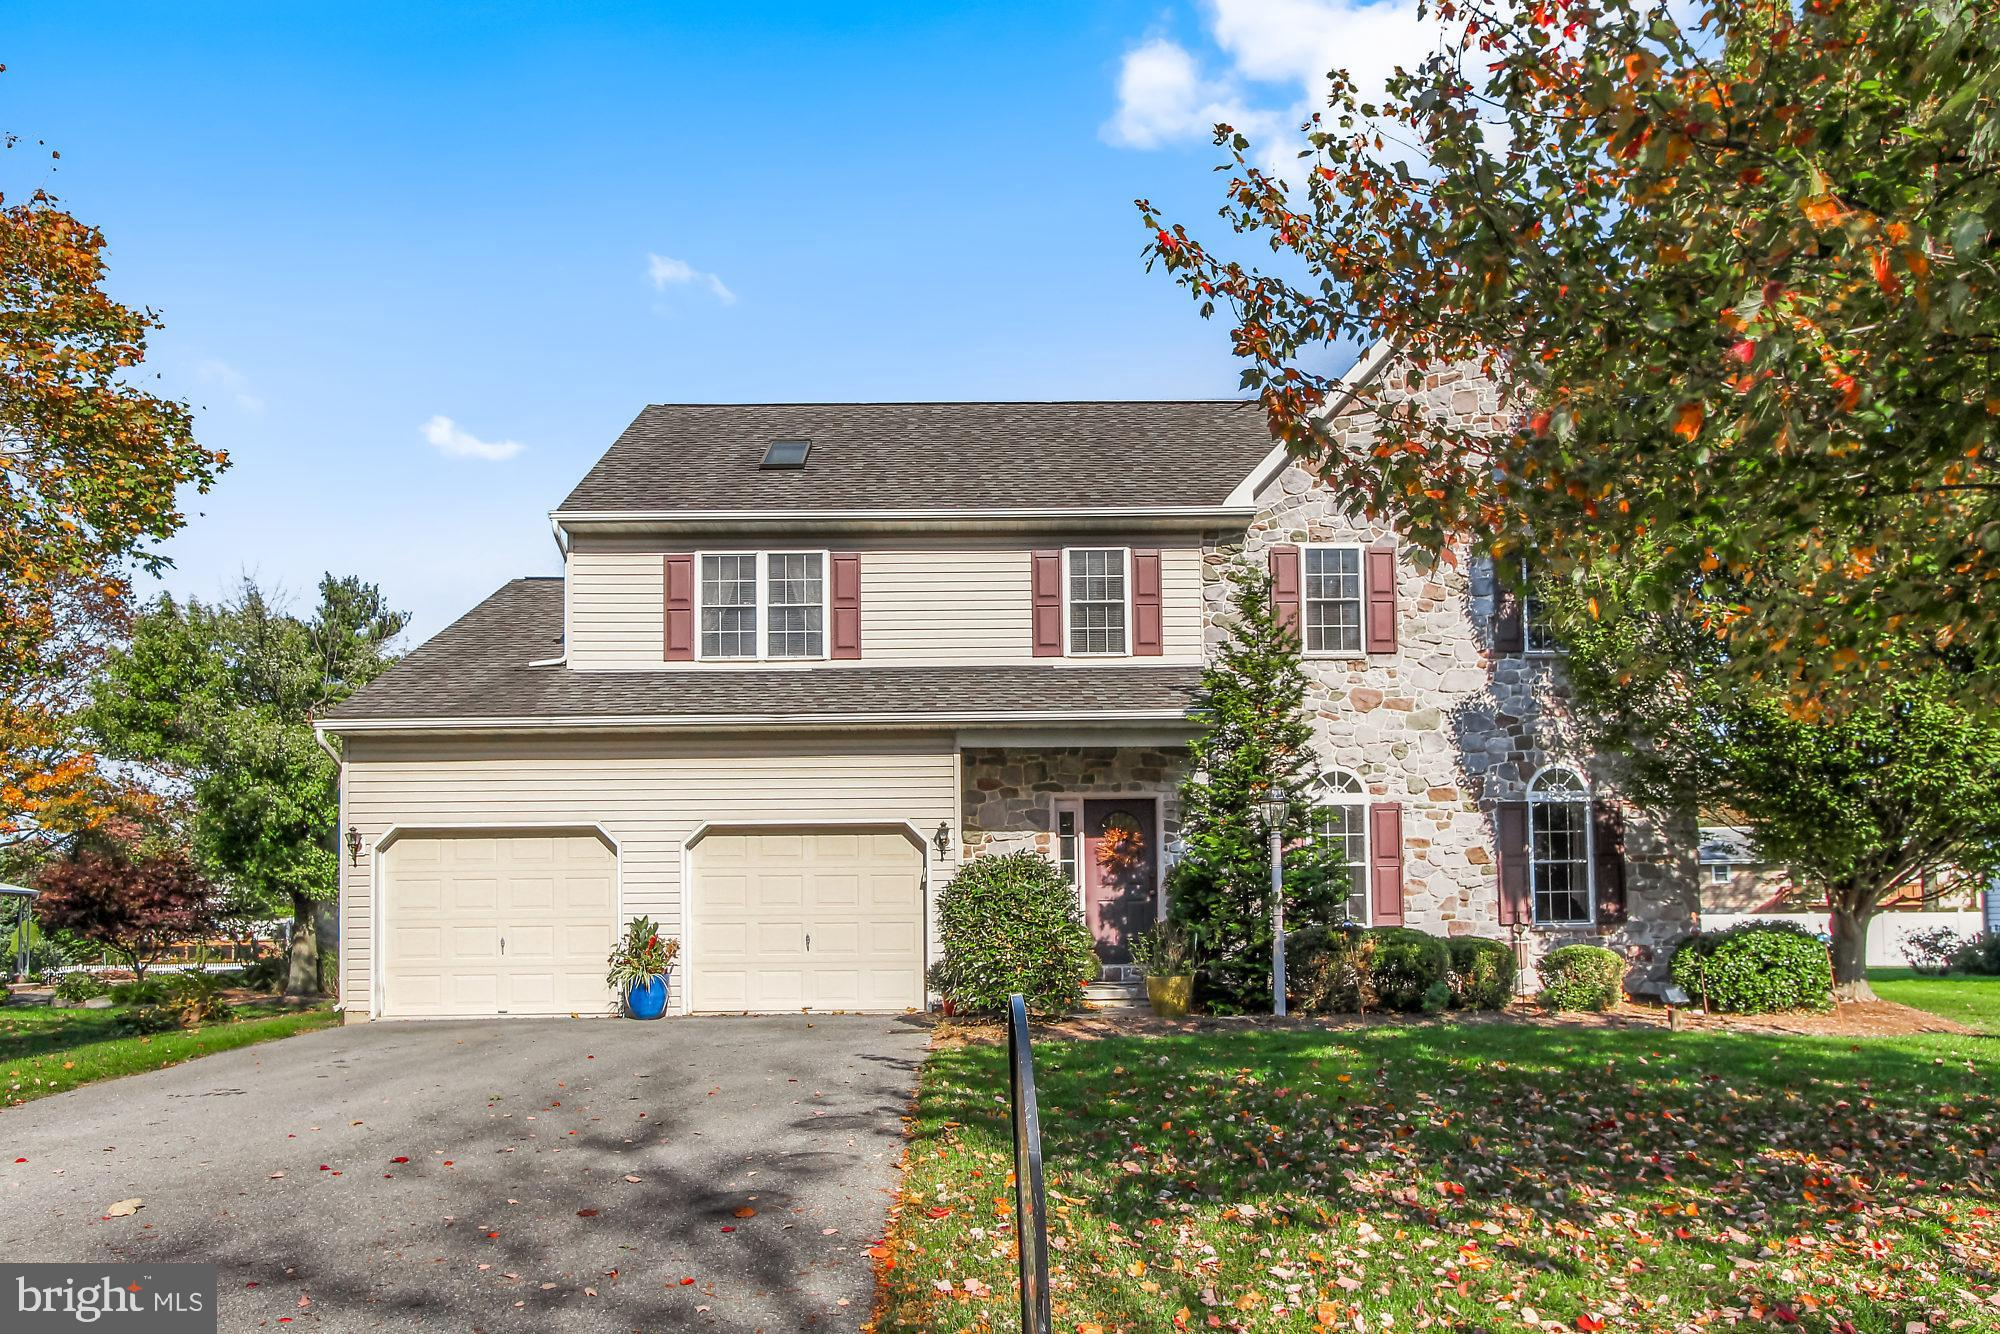 727 KENNETH DRIVE, MOUNT JOY, PA 17552